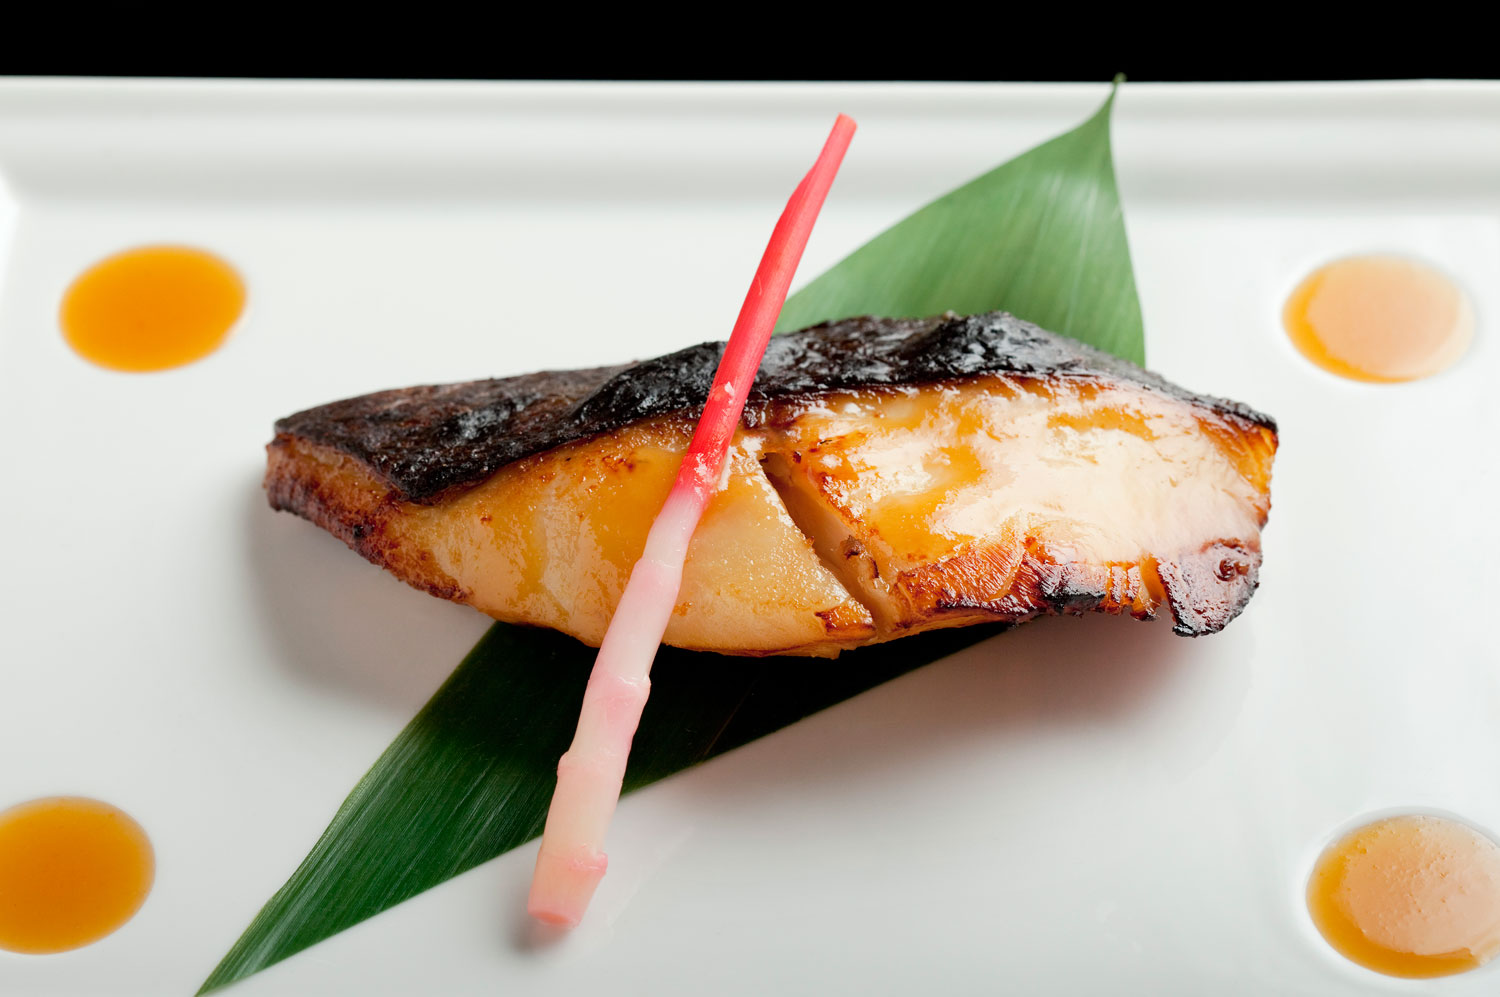 Nobu's signature black cod with sweet miso, photo courtesy of Caesars Palace.